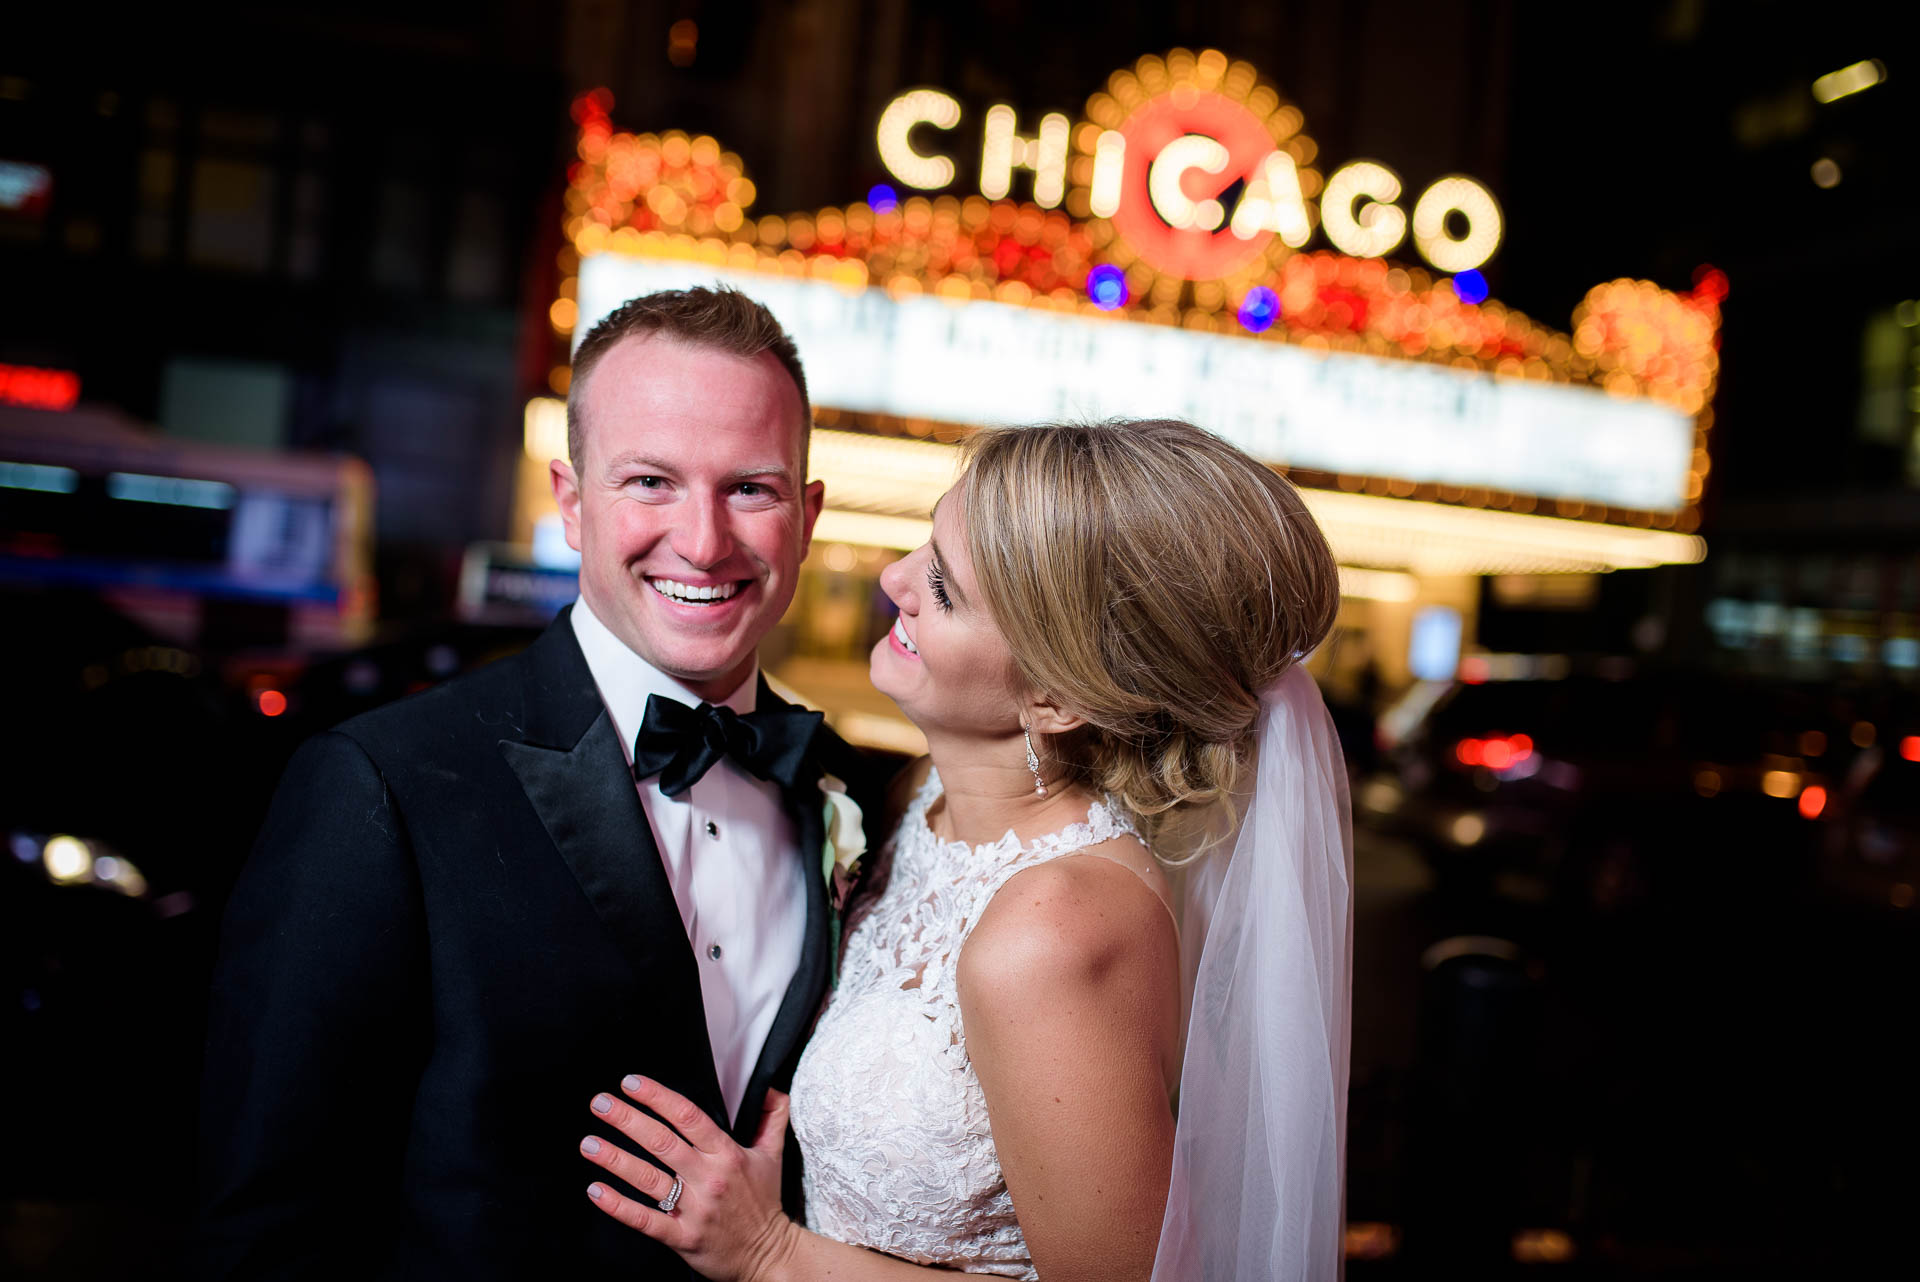 Wedding night portrait at the Chicago Theater.